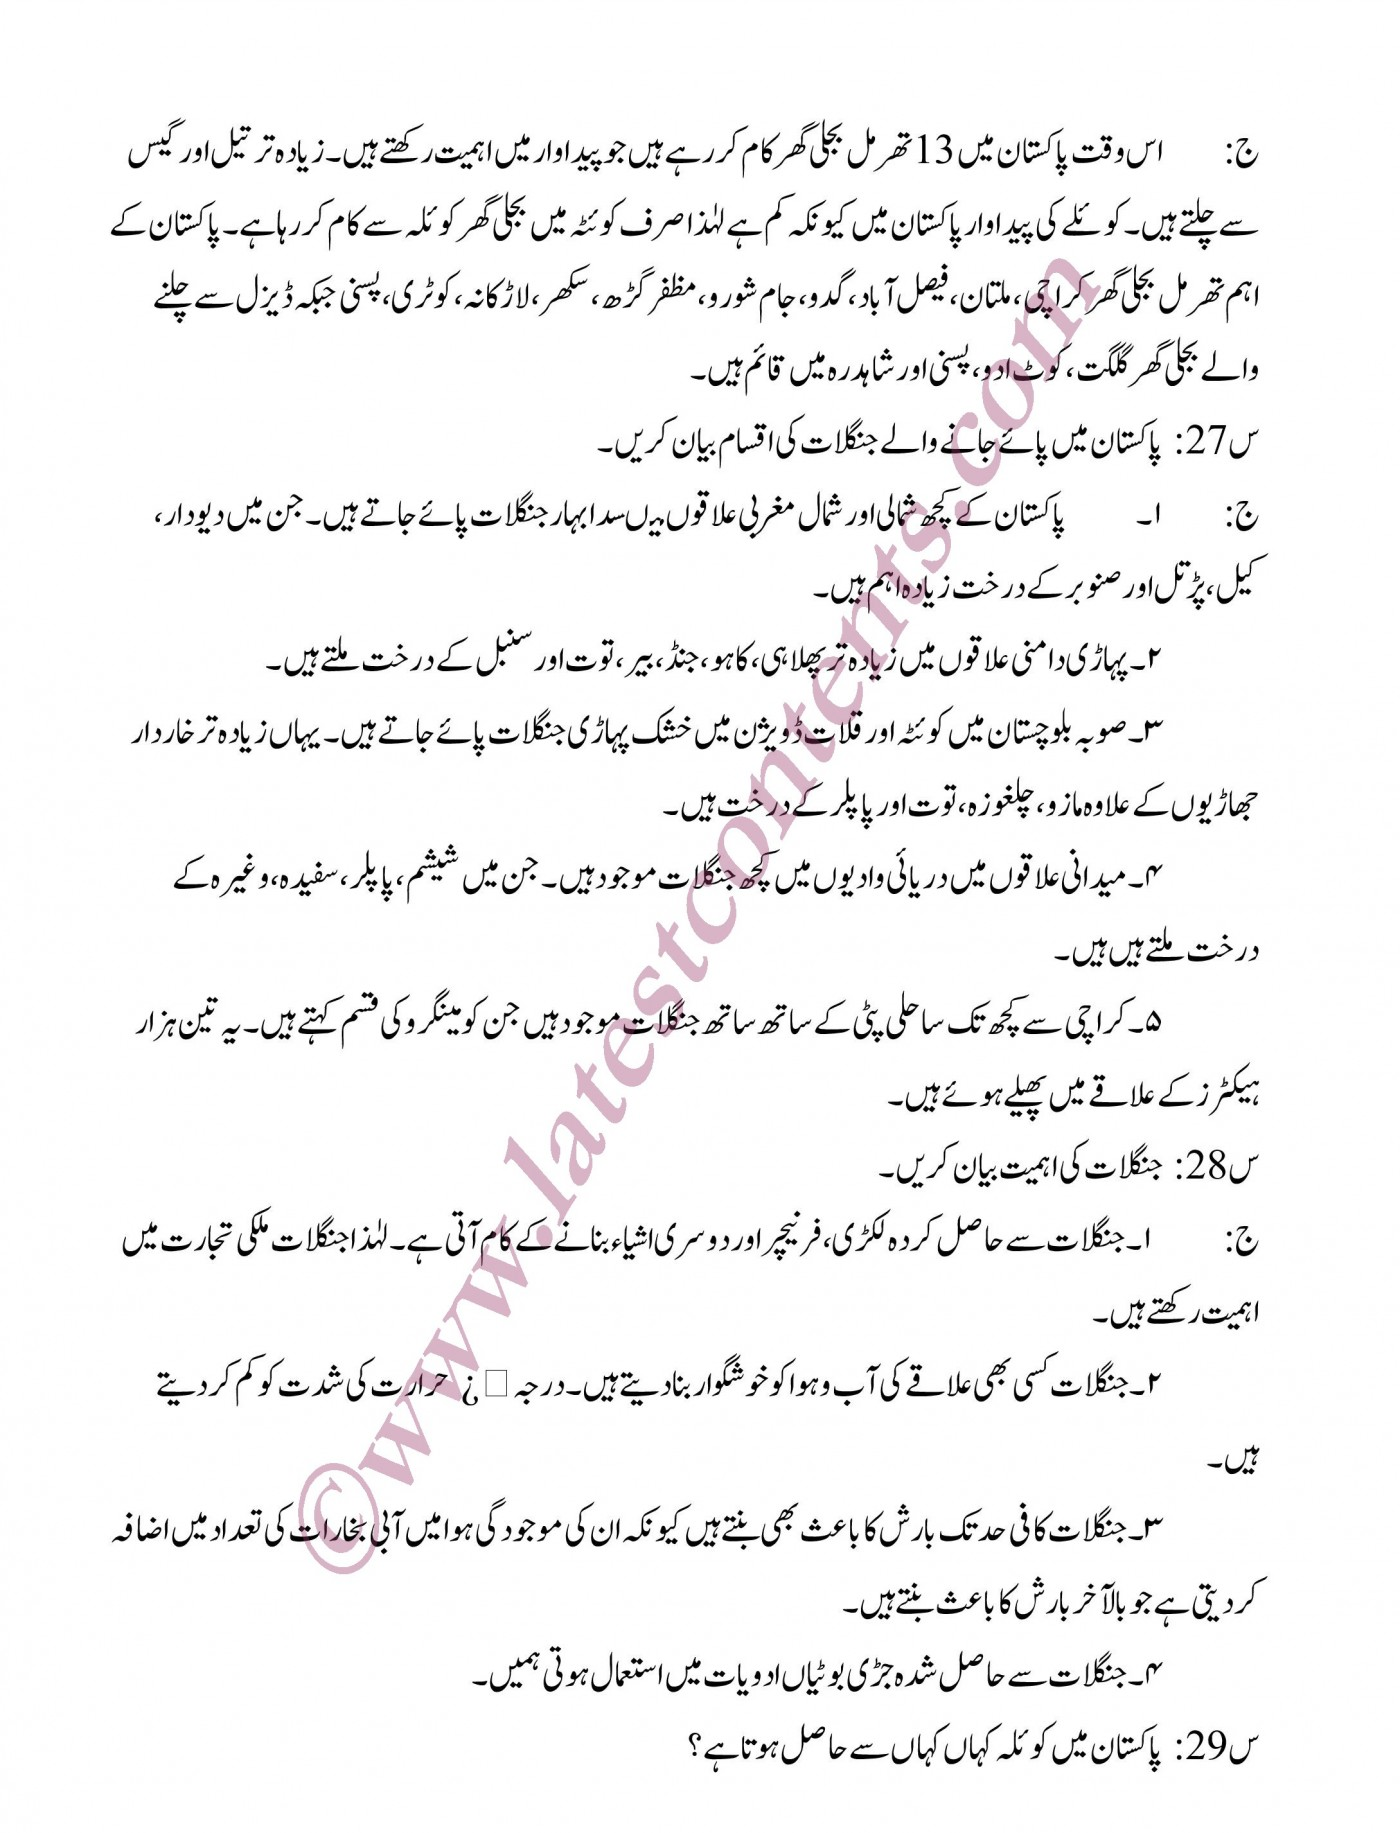 015 Issues To Write An Essay About Persuasive Social Media Essays On Topics Easiest Topic Pak Studies Short Questions Notes In Ur Funny Good Argumentative Interesting Paper Easy Awesome For High School 1400